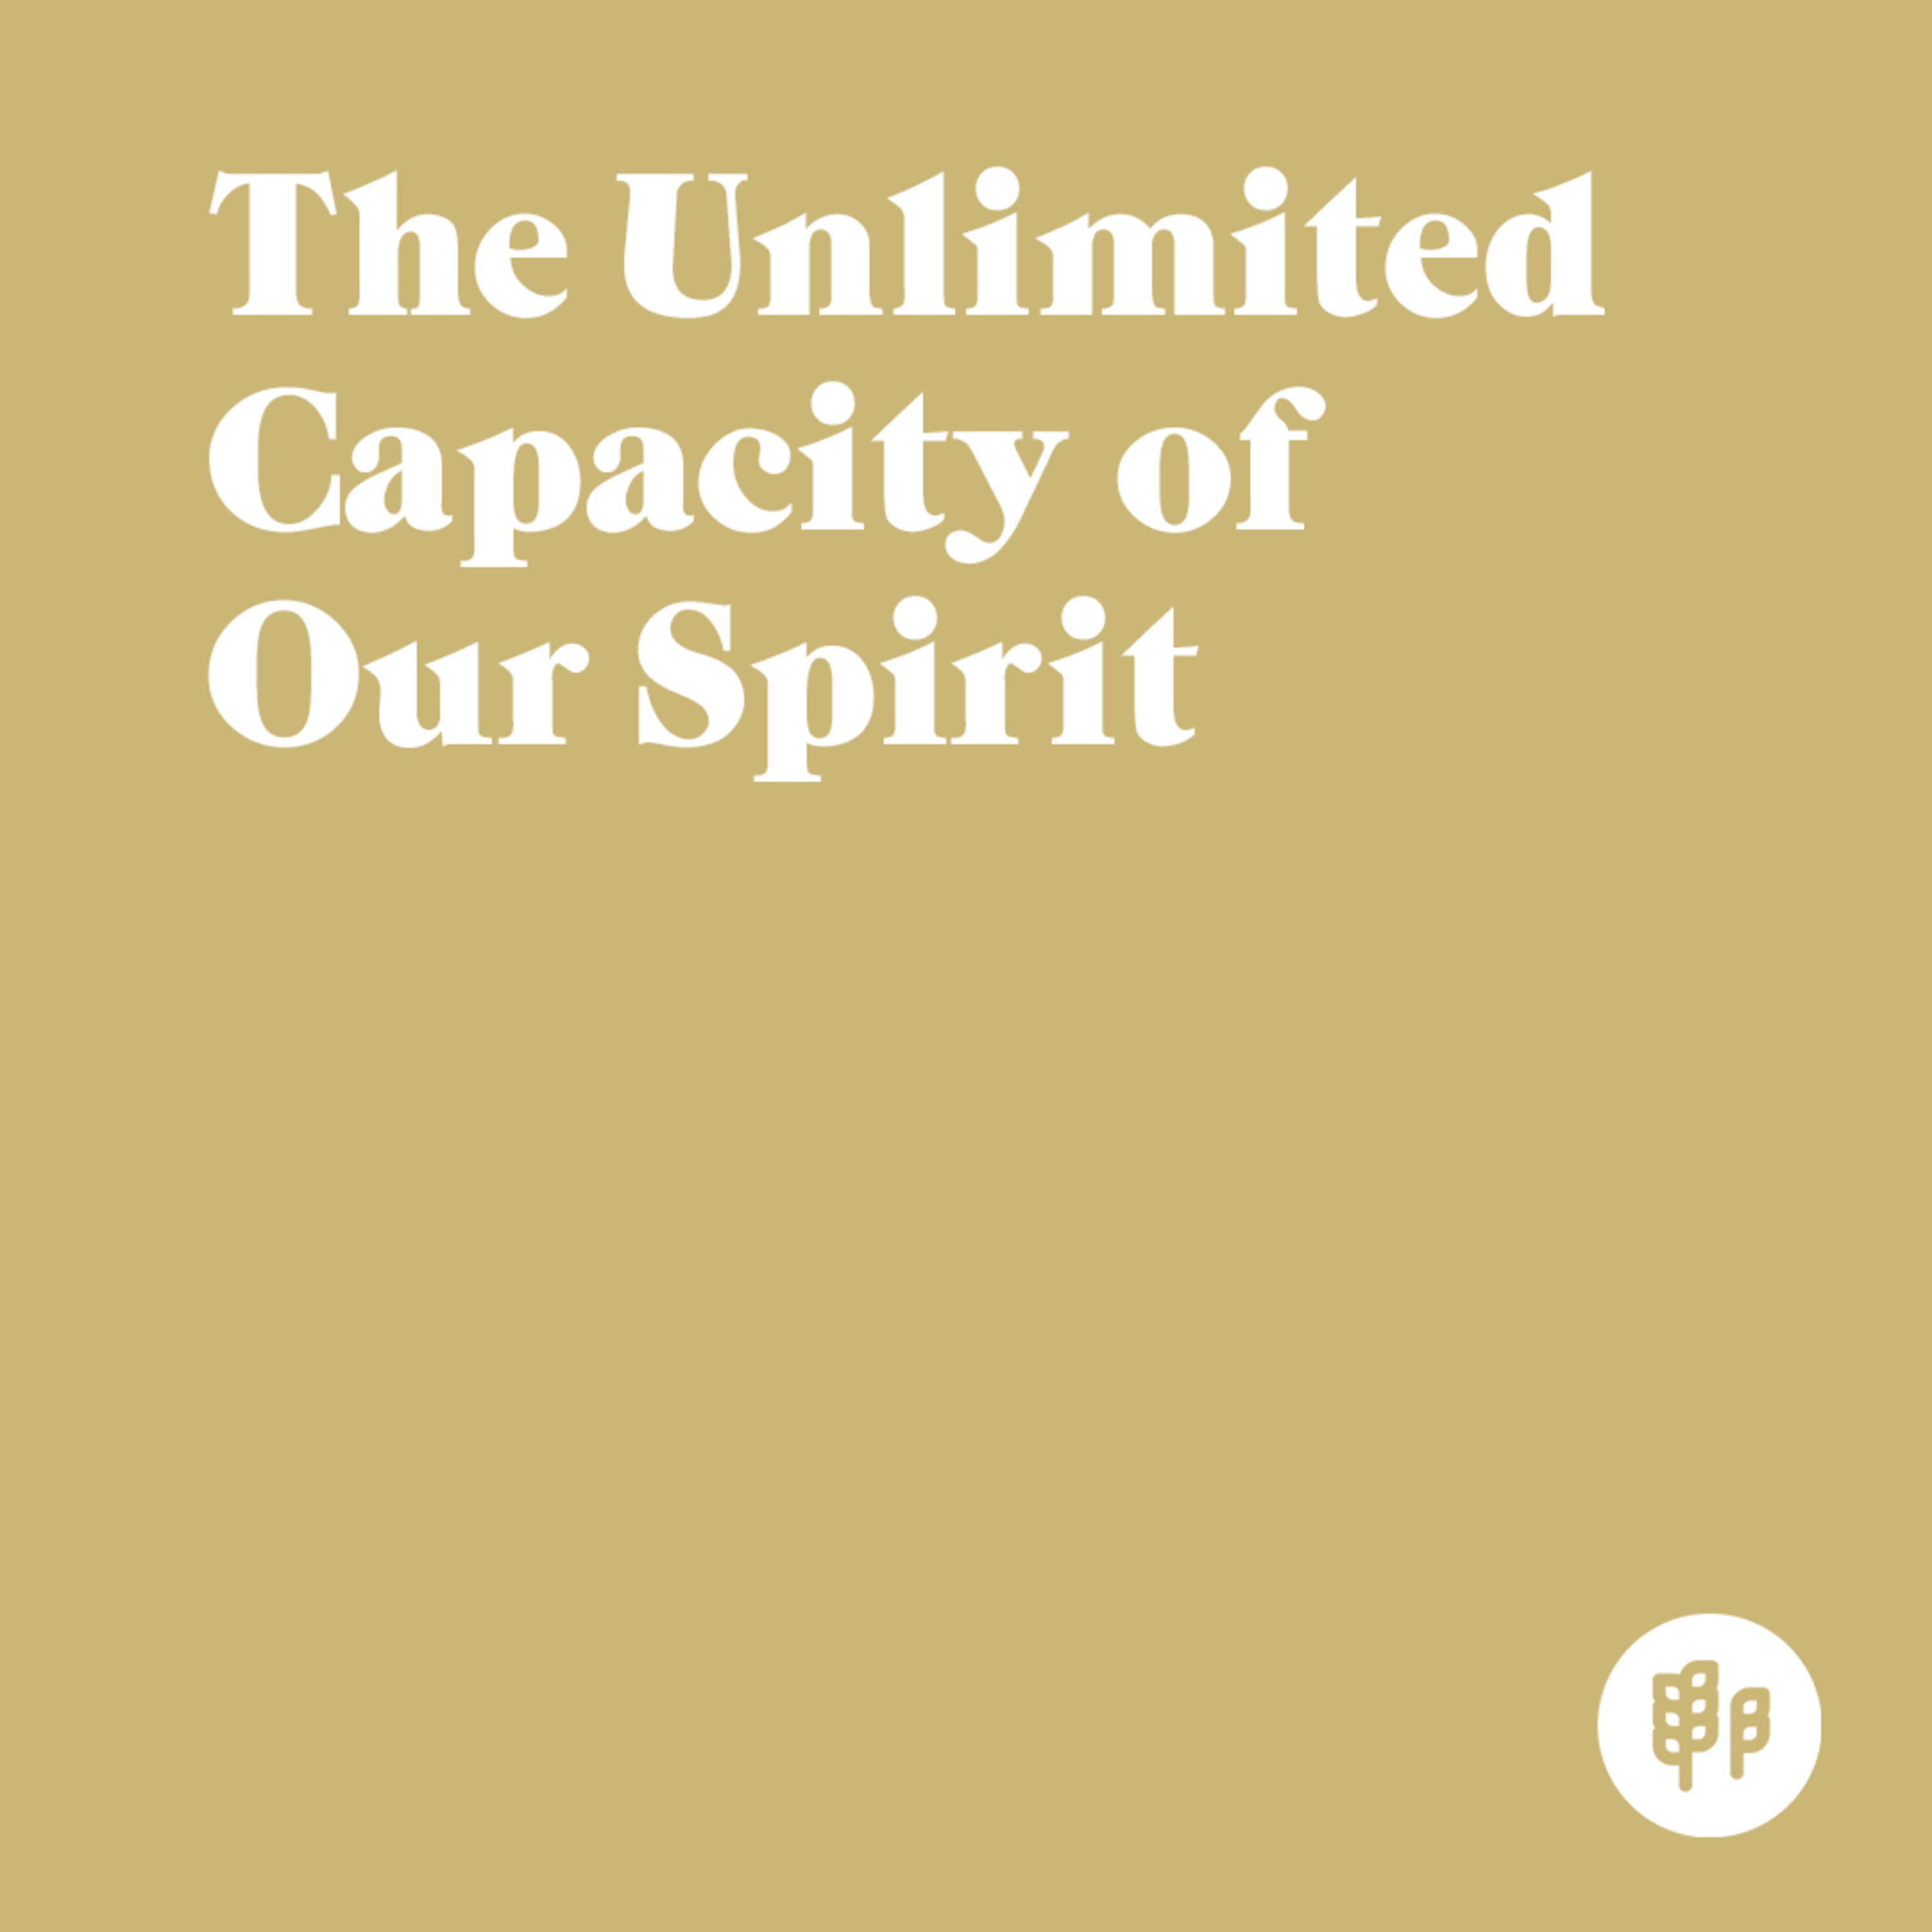 The Unlimited Capacity of Our Spirit (M.R.)